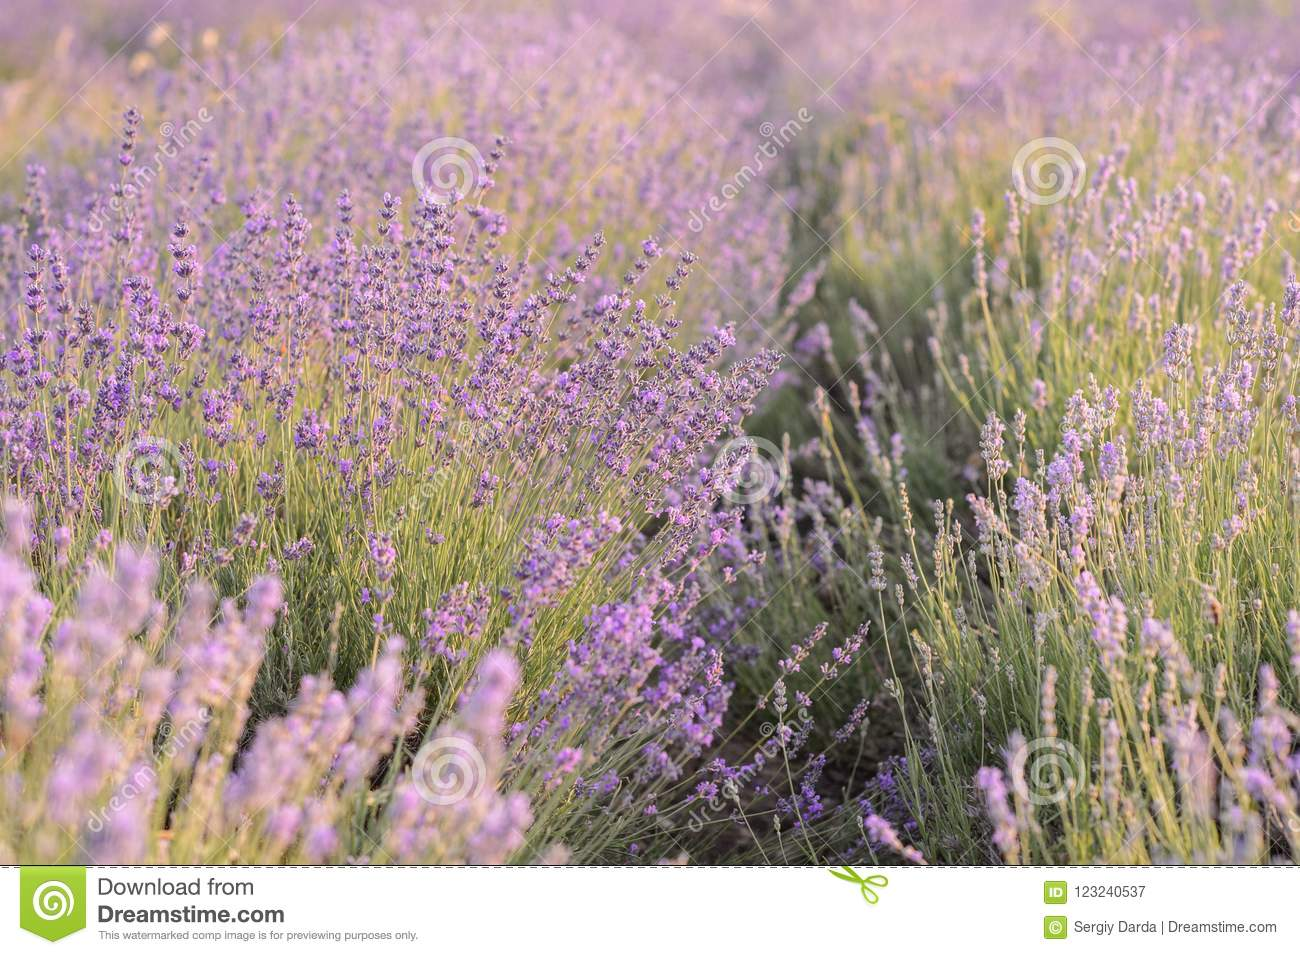 Lavender flowers blooming. Purple field of flowers. Tender lavender flowers.